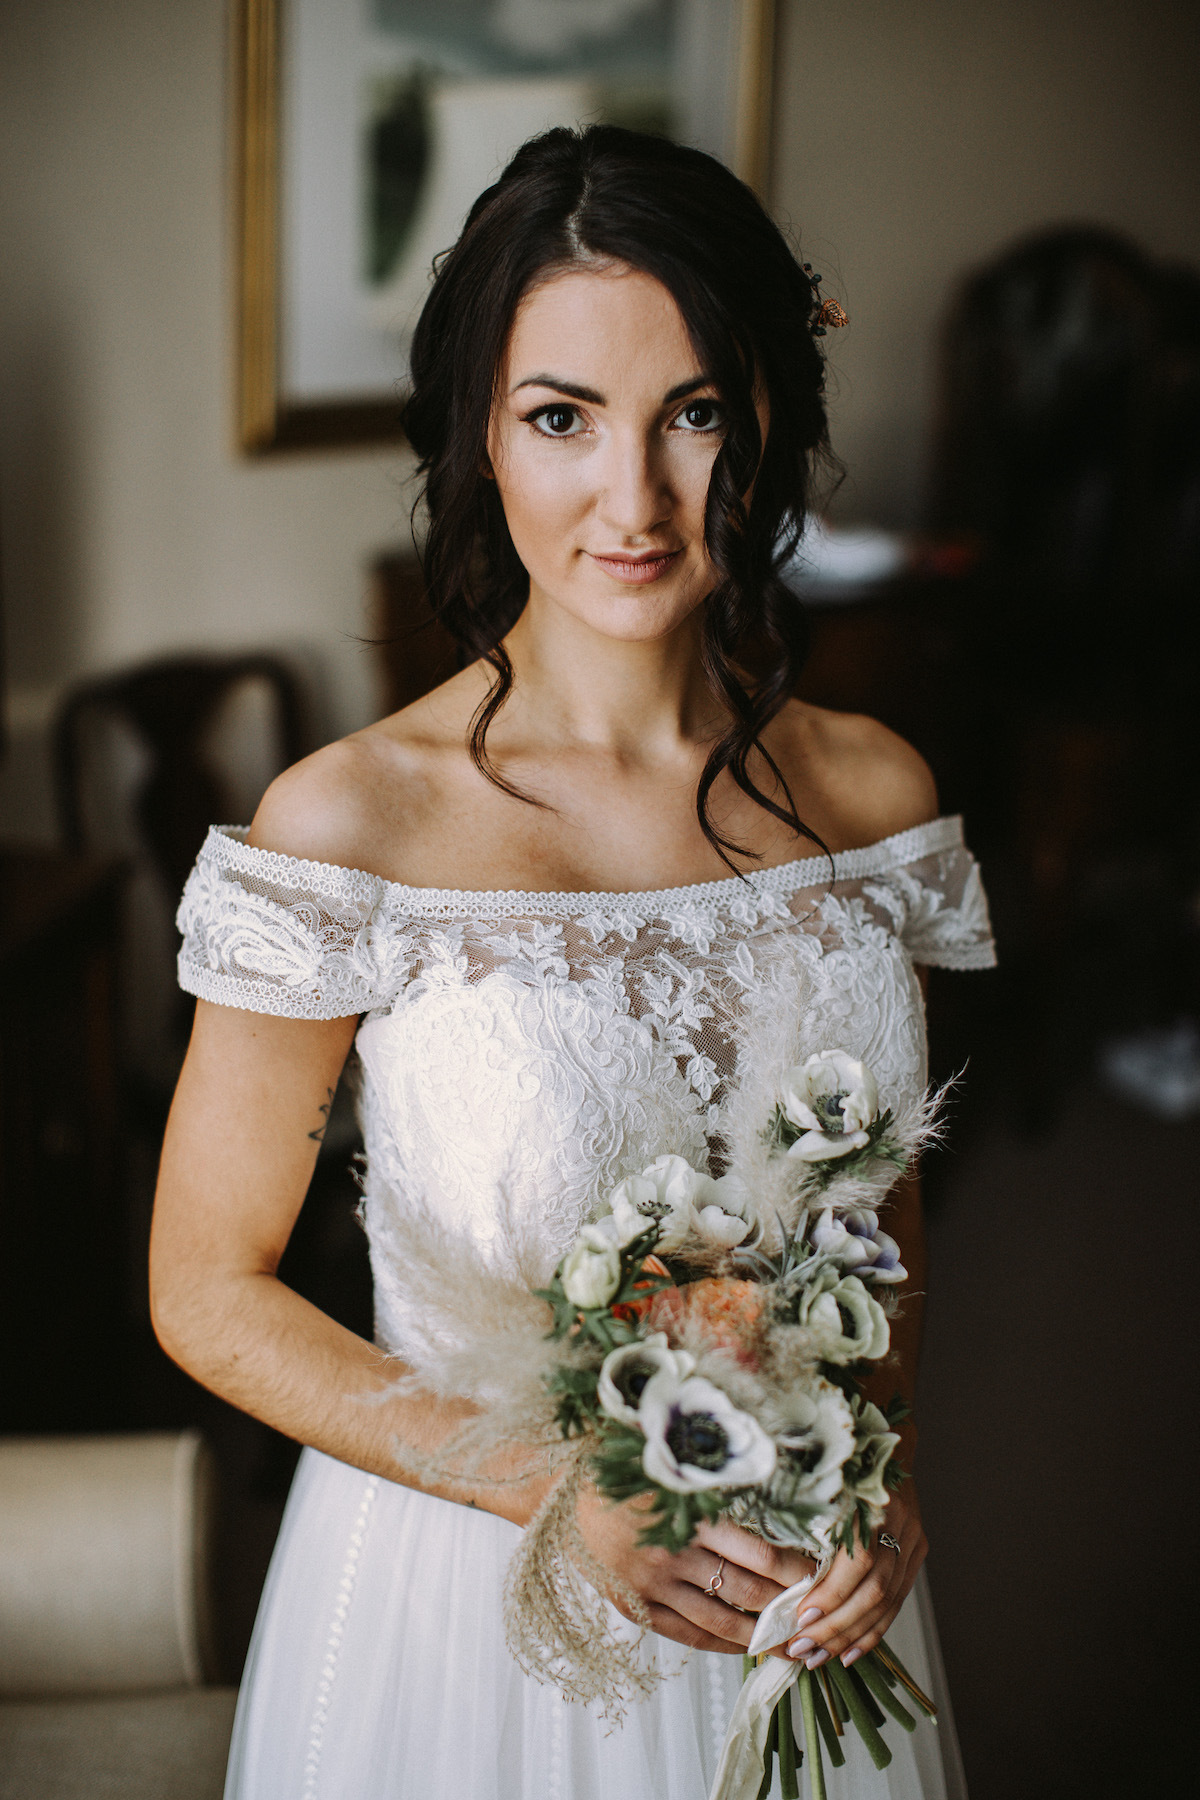 Boho bridal look with handtied bouquet